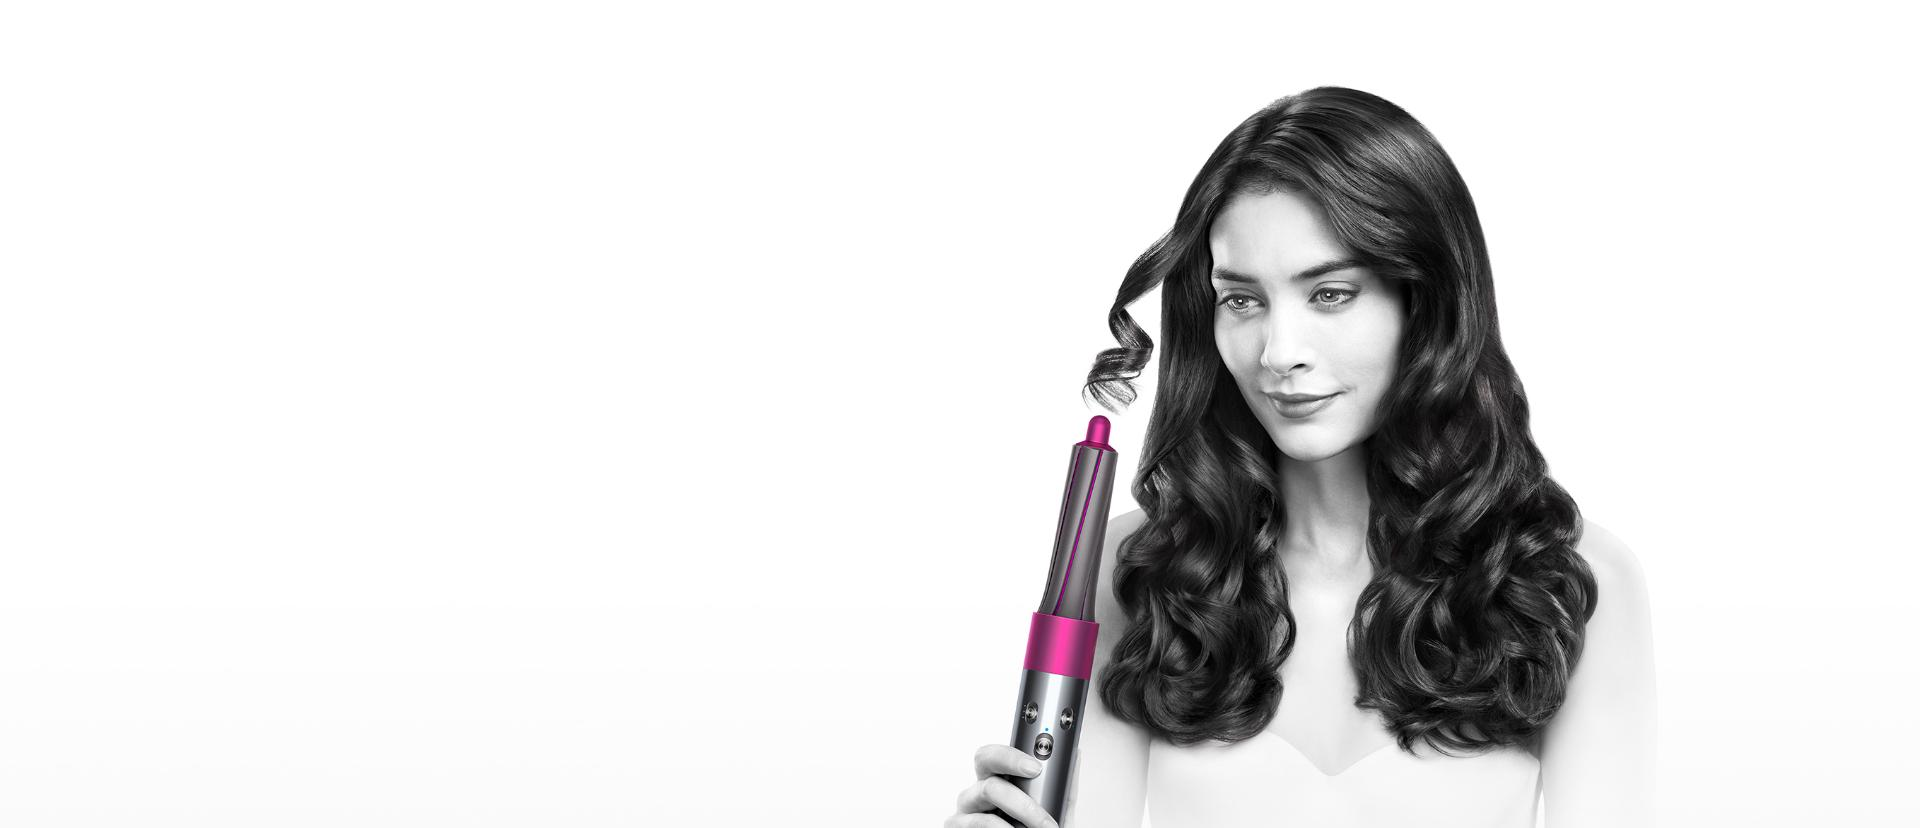 Model demonstrating the Dyson Airwrap™ hair styler to create bouncy curls